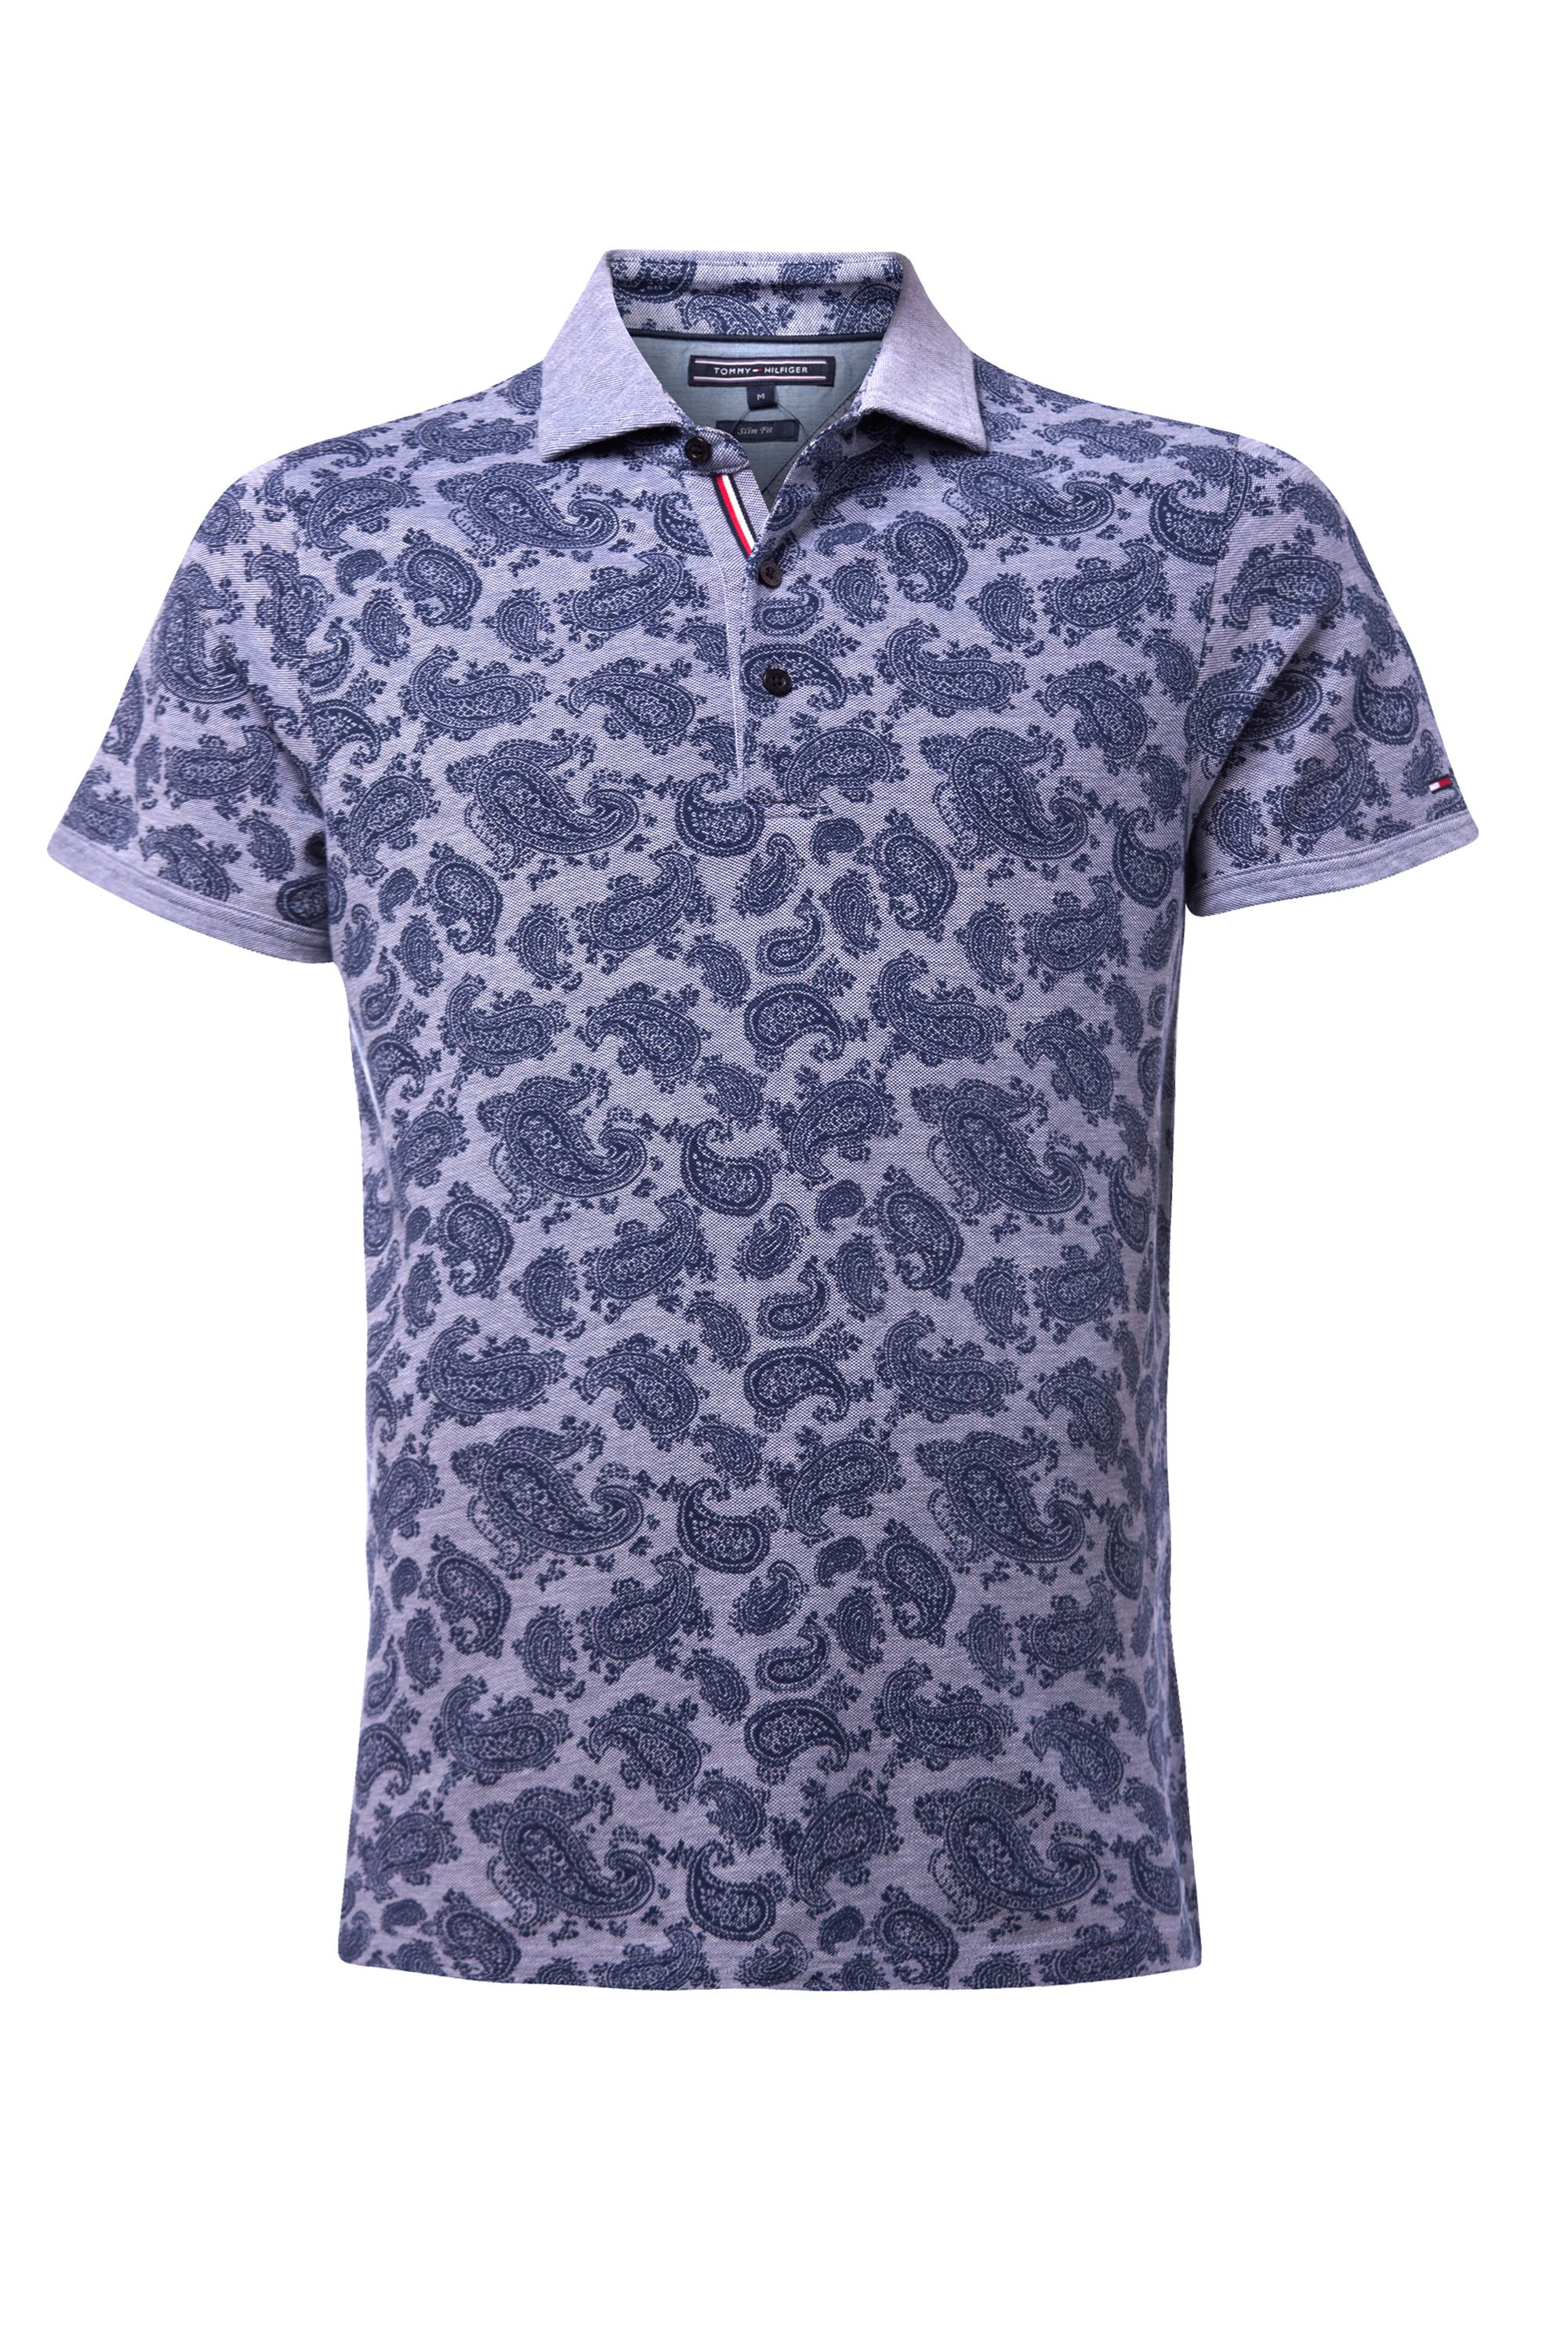 Men's Tommy Hilfiger Bay print polo top, Blue